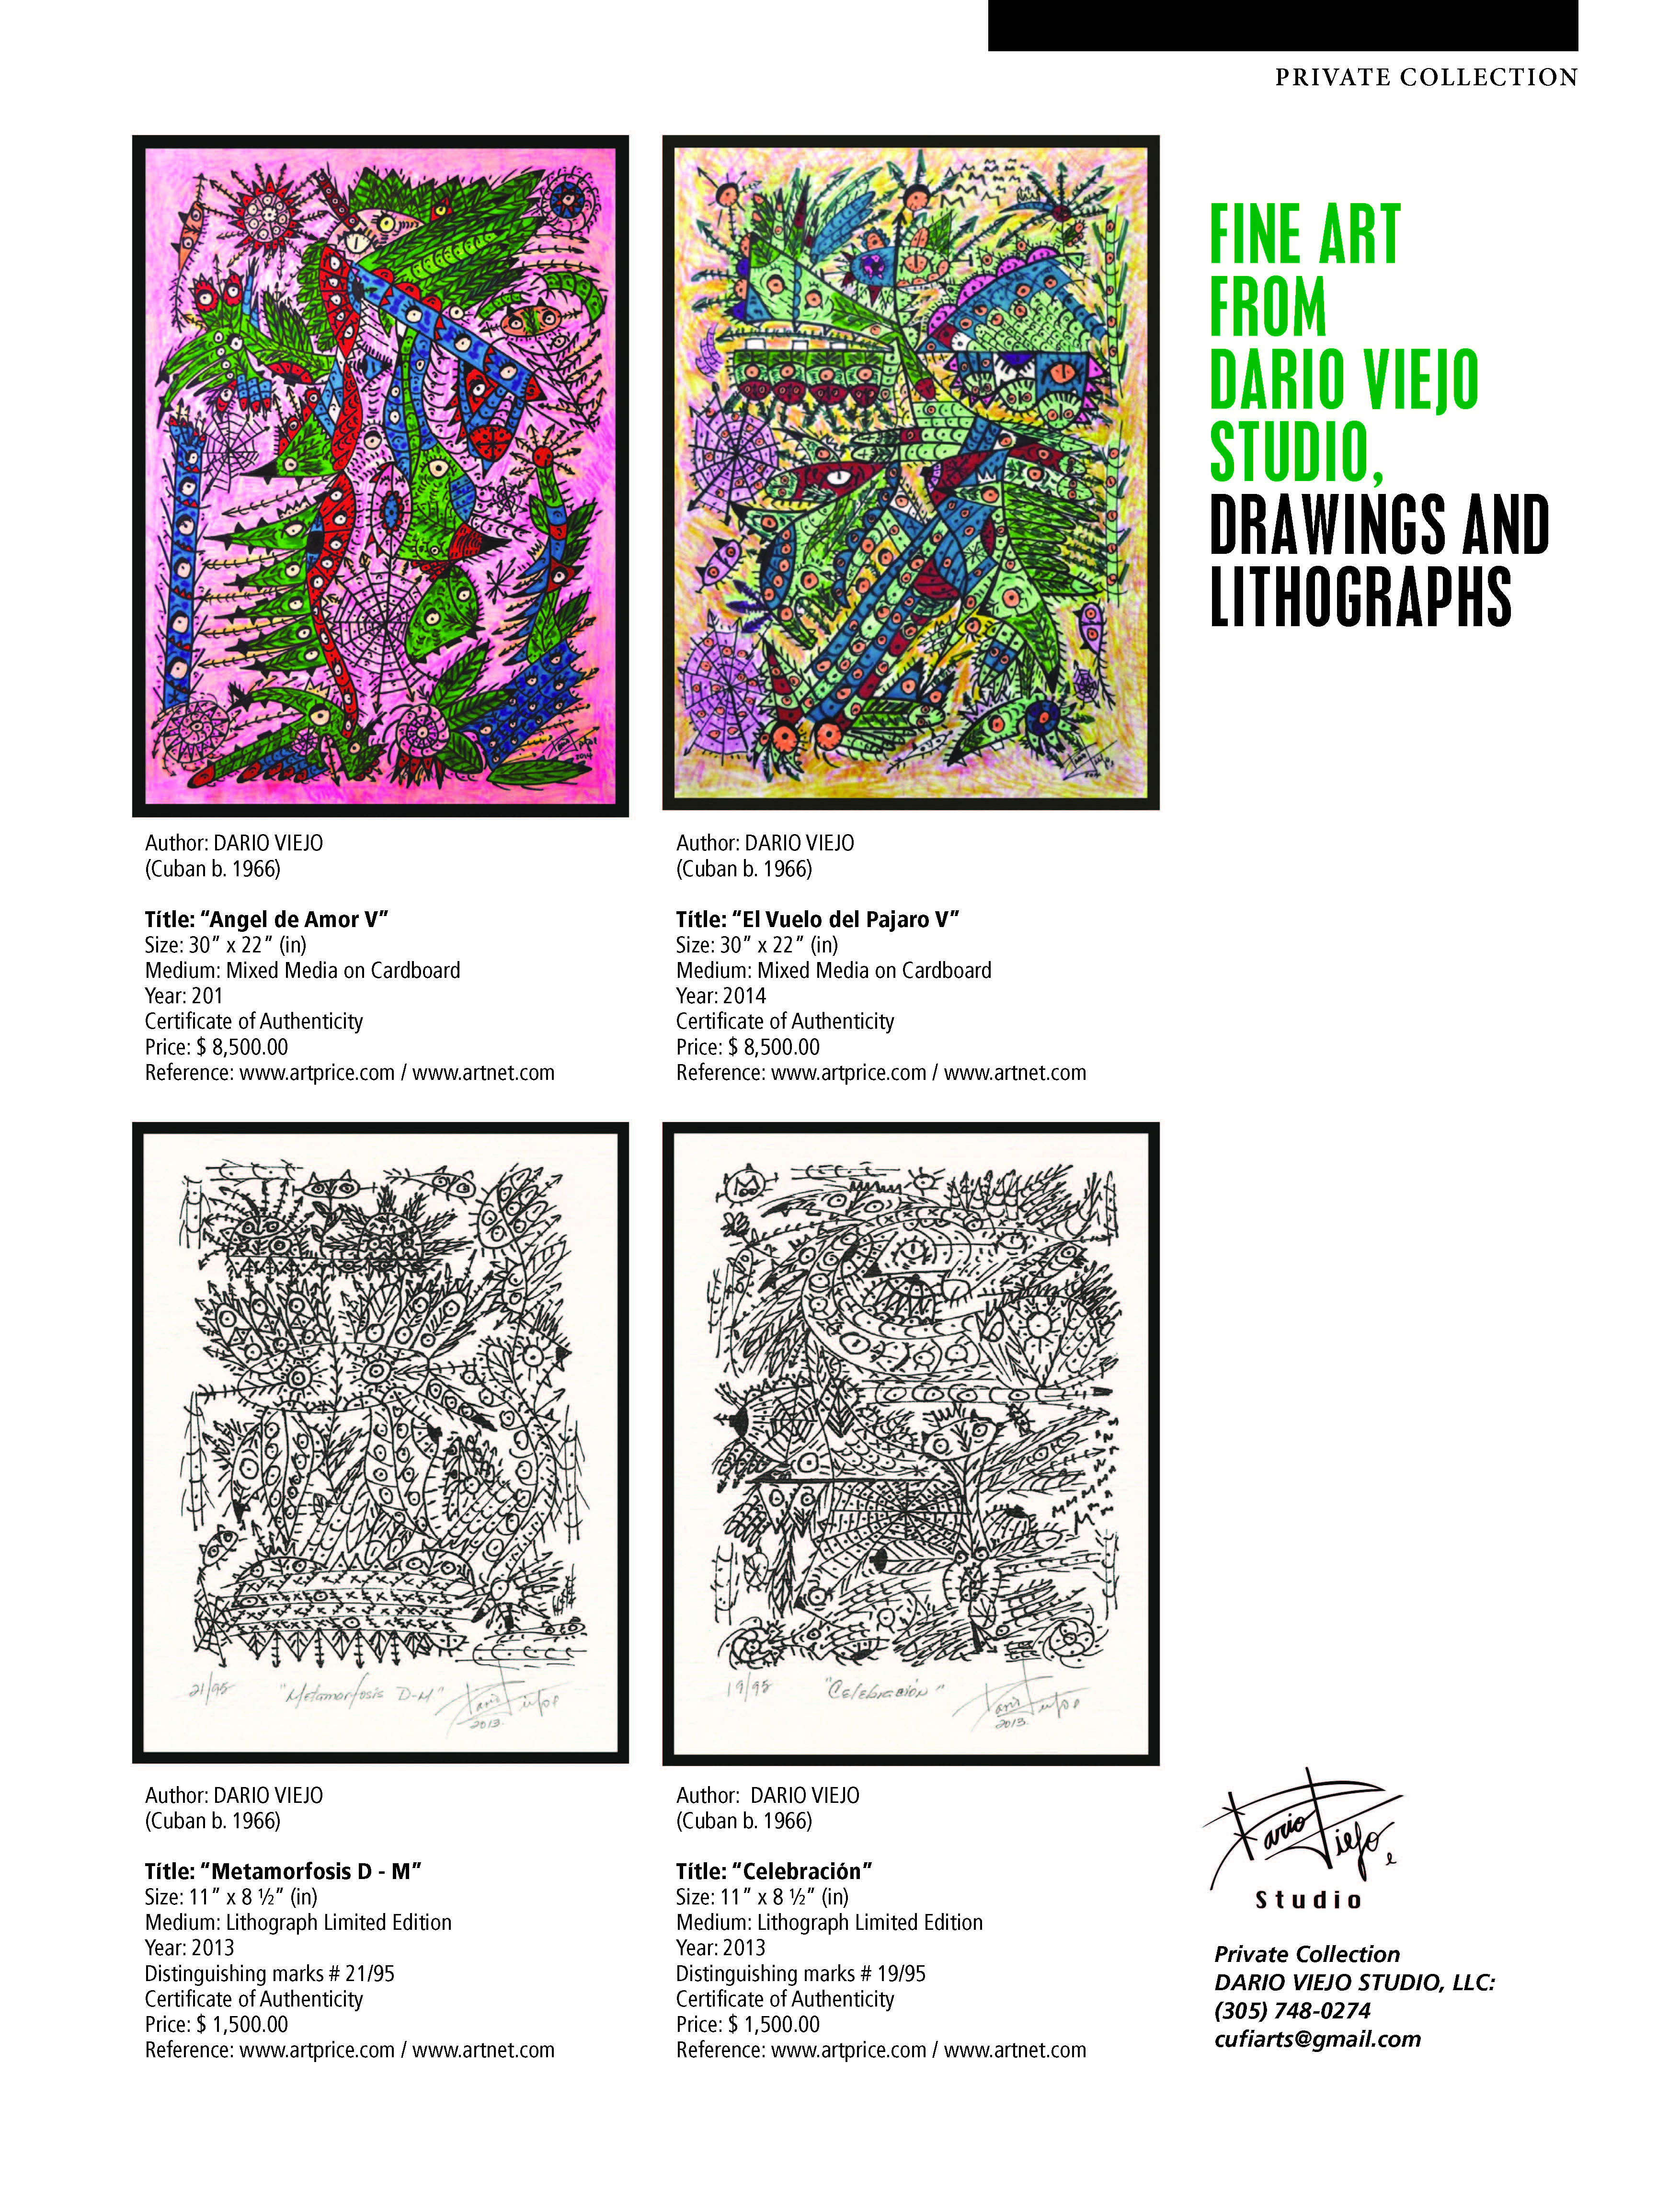 FINE ART FROM DARIO VIEJO STUDIO DRAWINGS AND LITHOGRAPHS